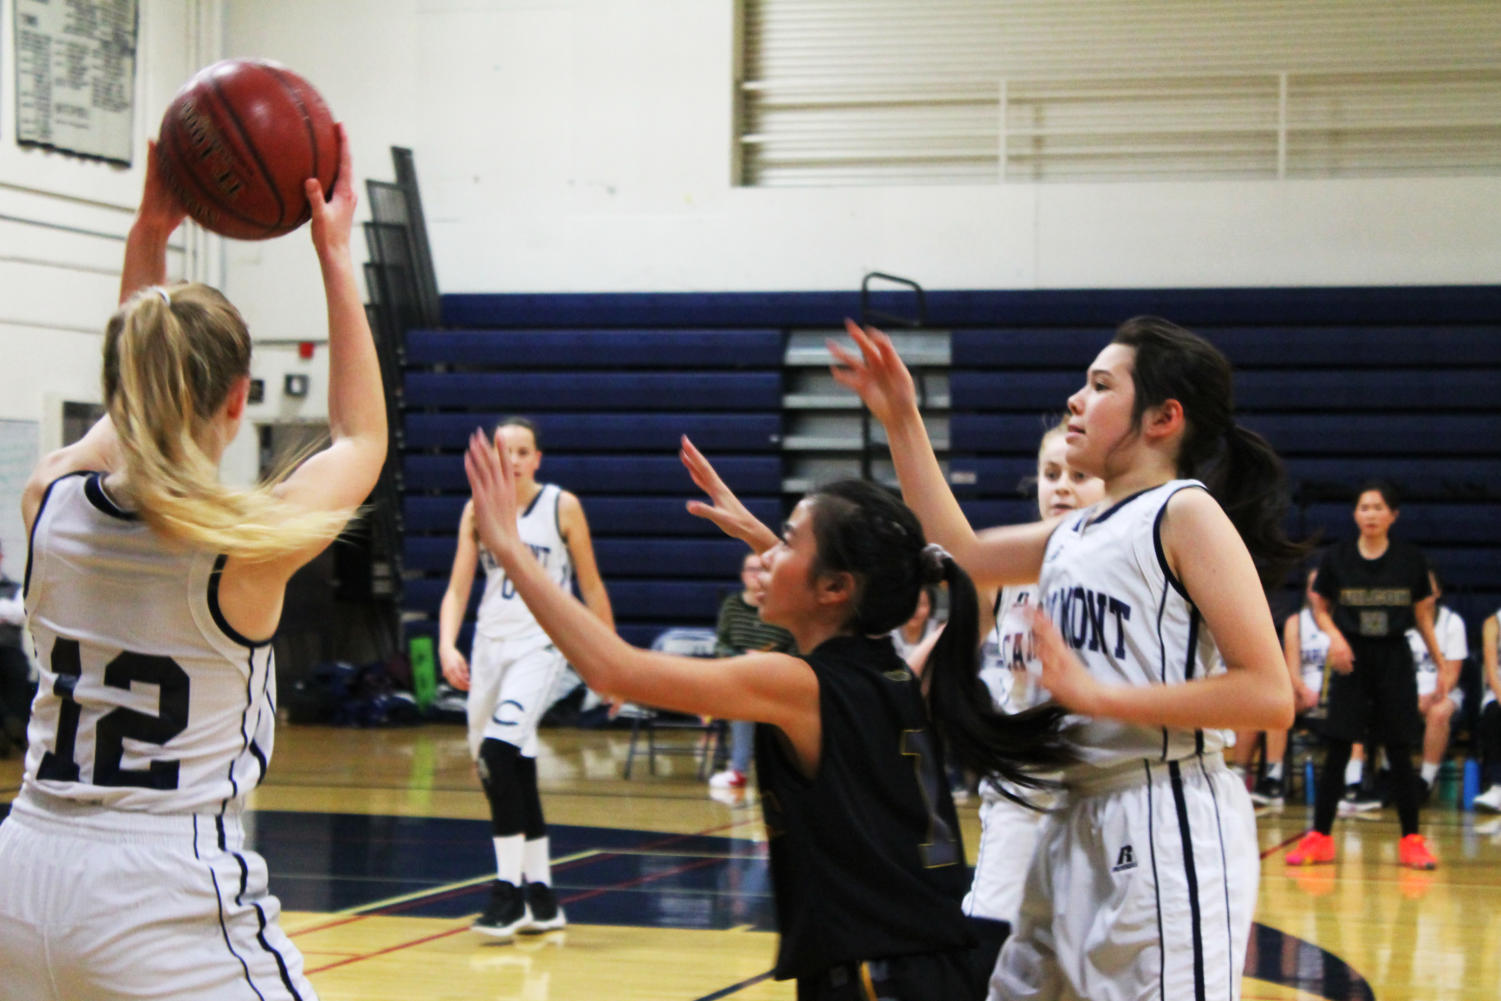 Nicole Olazar, a junior, looks to find an open teammate to pass the ball to.